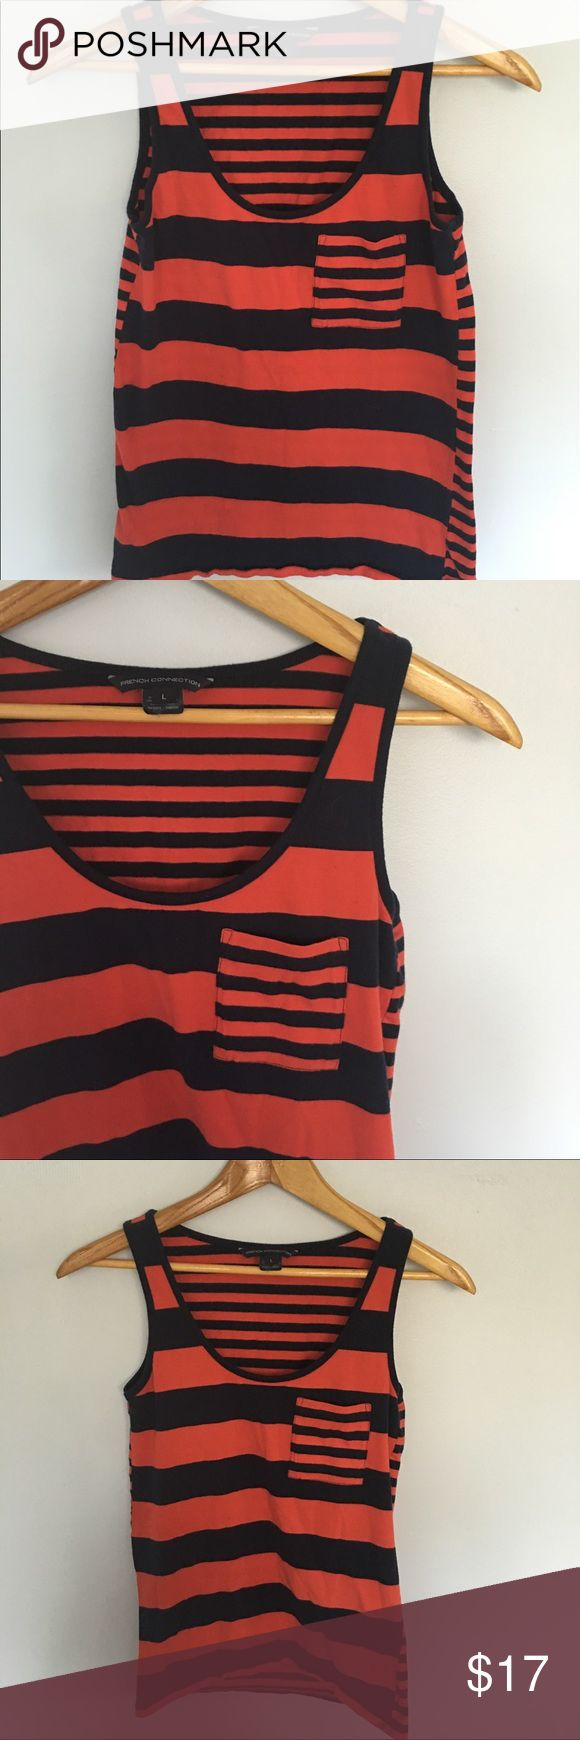 French Connection Orange & Navy Striped Tank Top L French Connection tank top. Comfy and easy to wears. Dress it up or down. Only worn a handful of times. Last picture is the same top on model in white & navy. French Connection Tops Tank Tops